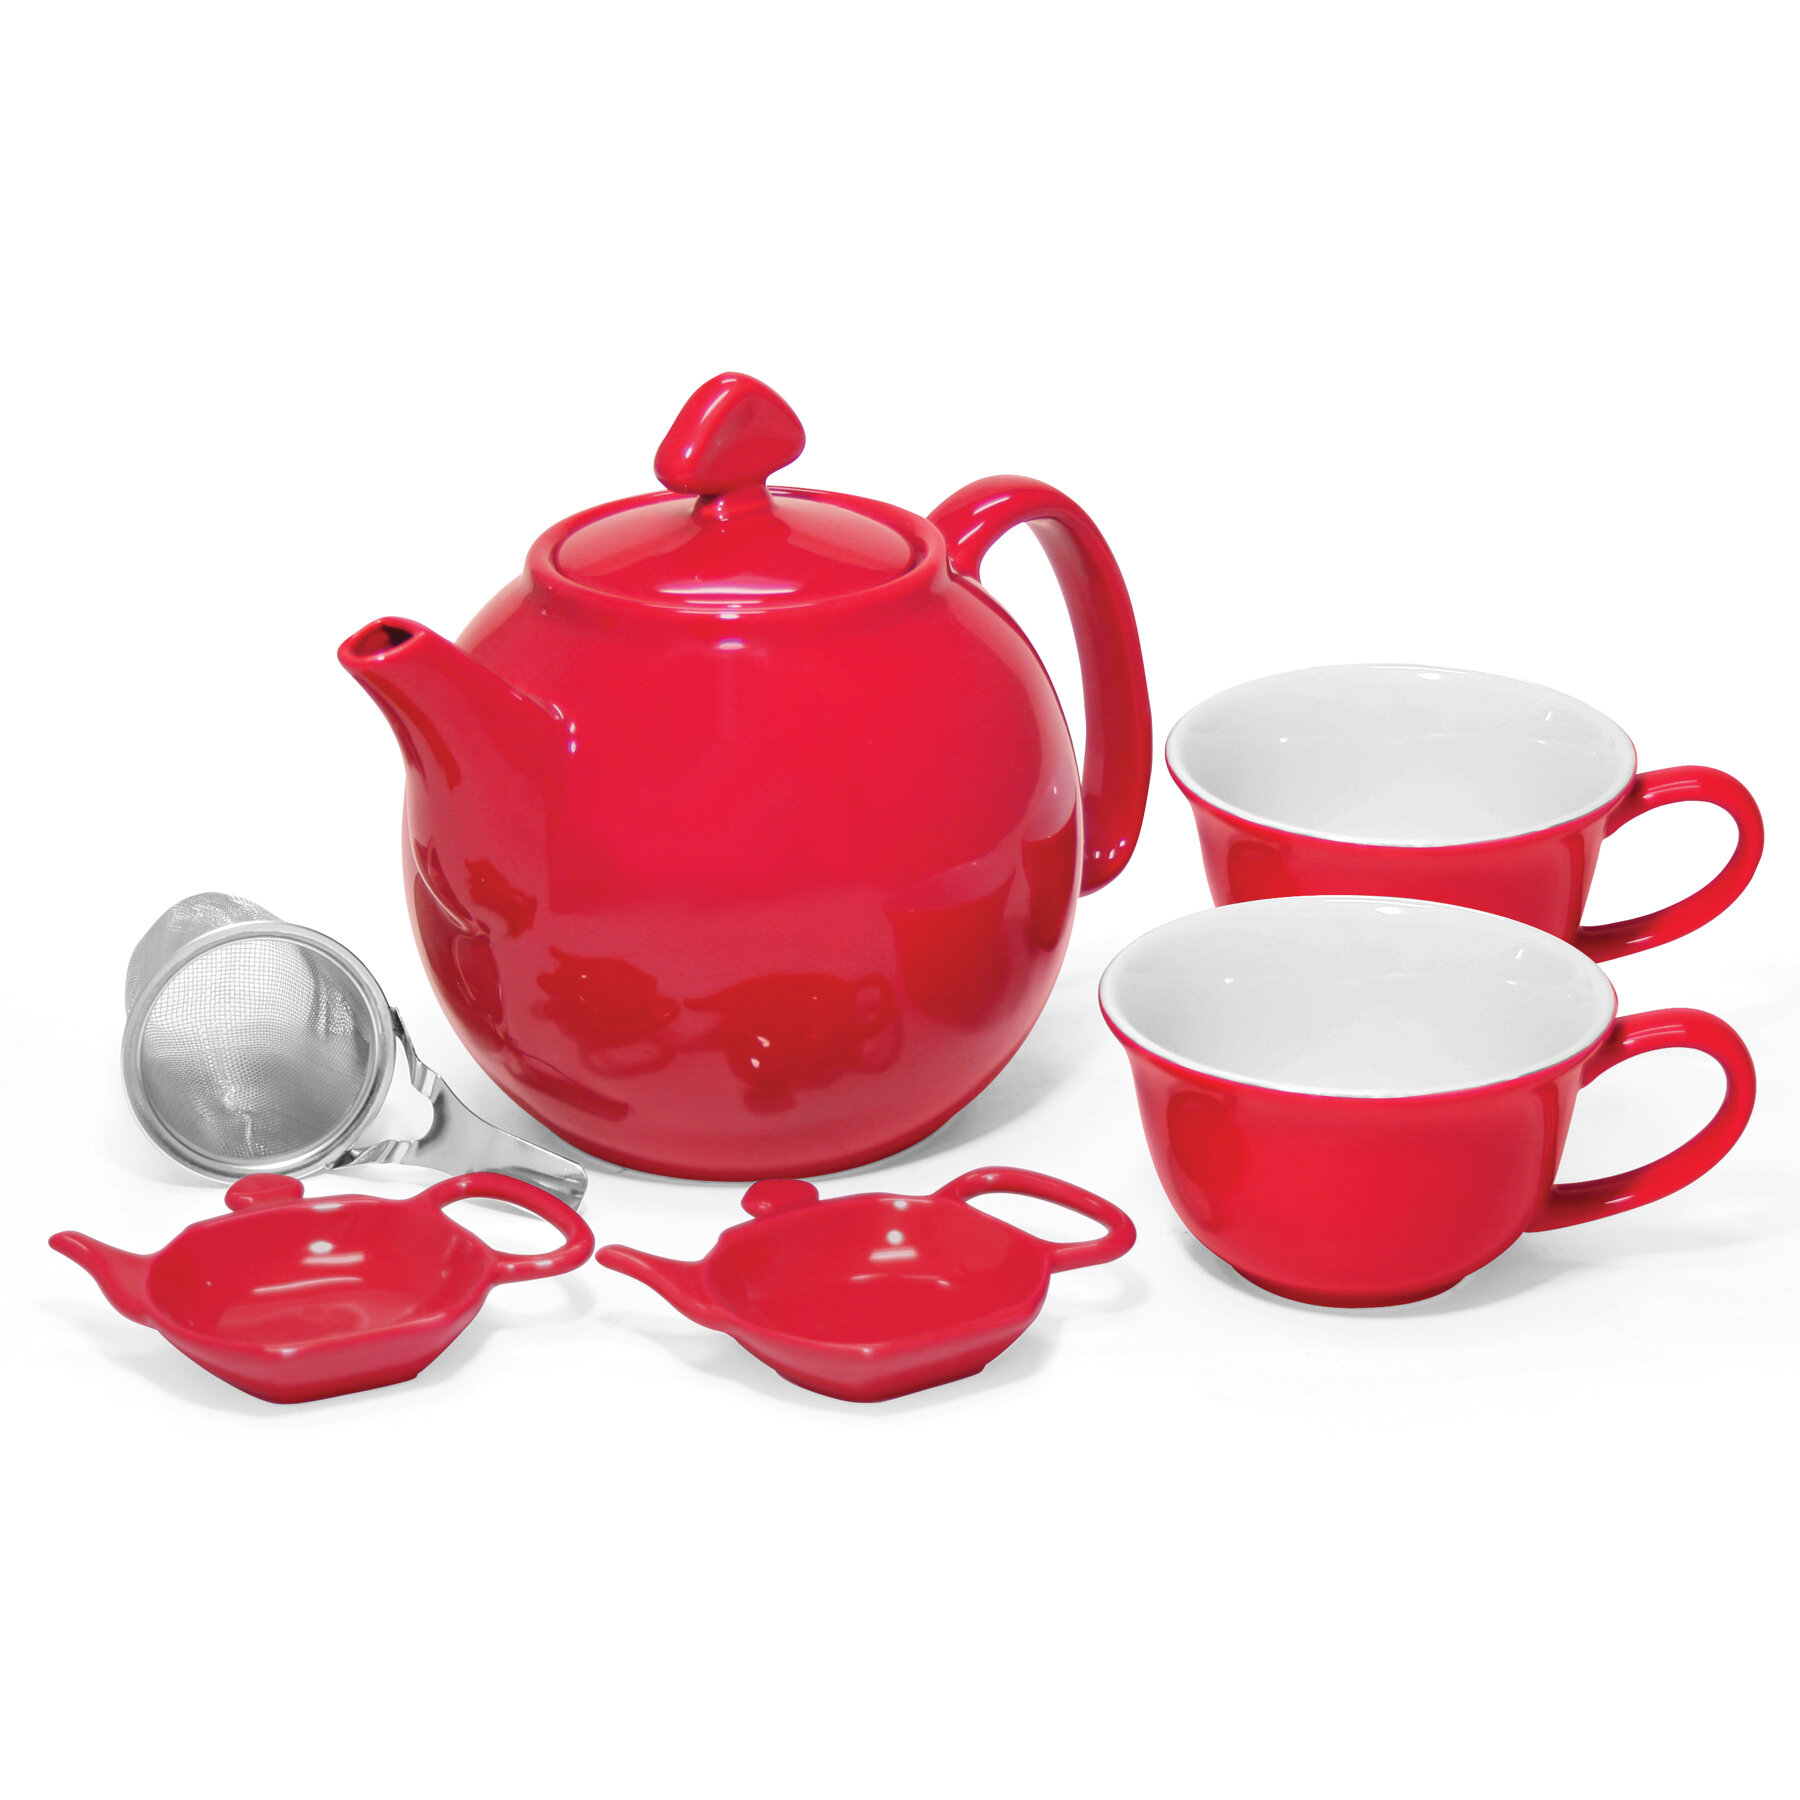 Chantal 6 piece ceramic lover 39 s teapot set ebay - Chantal teapots ...